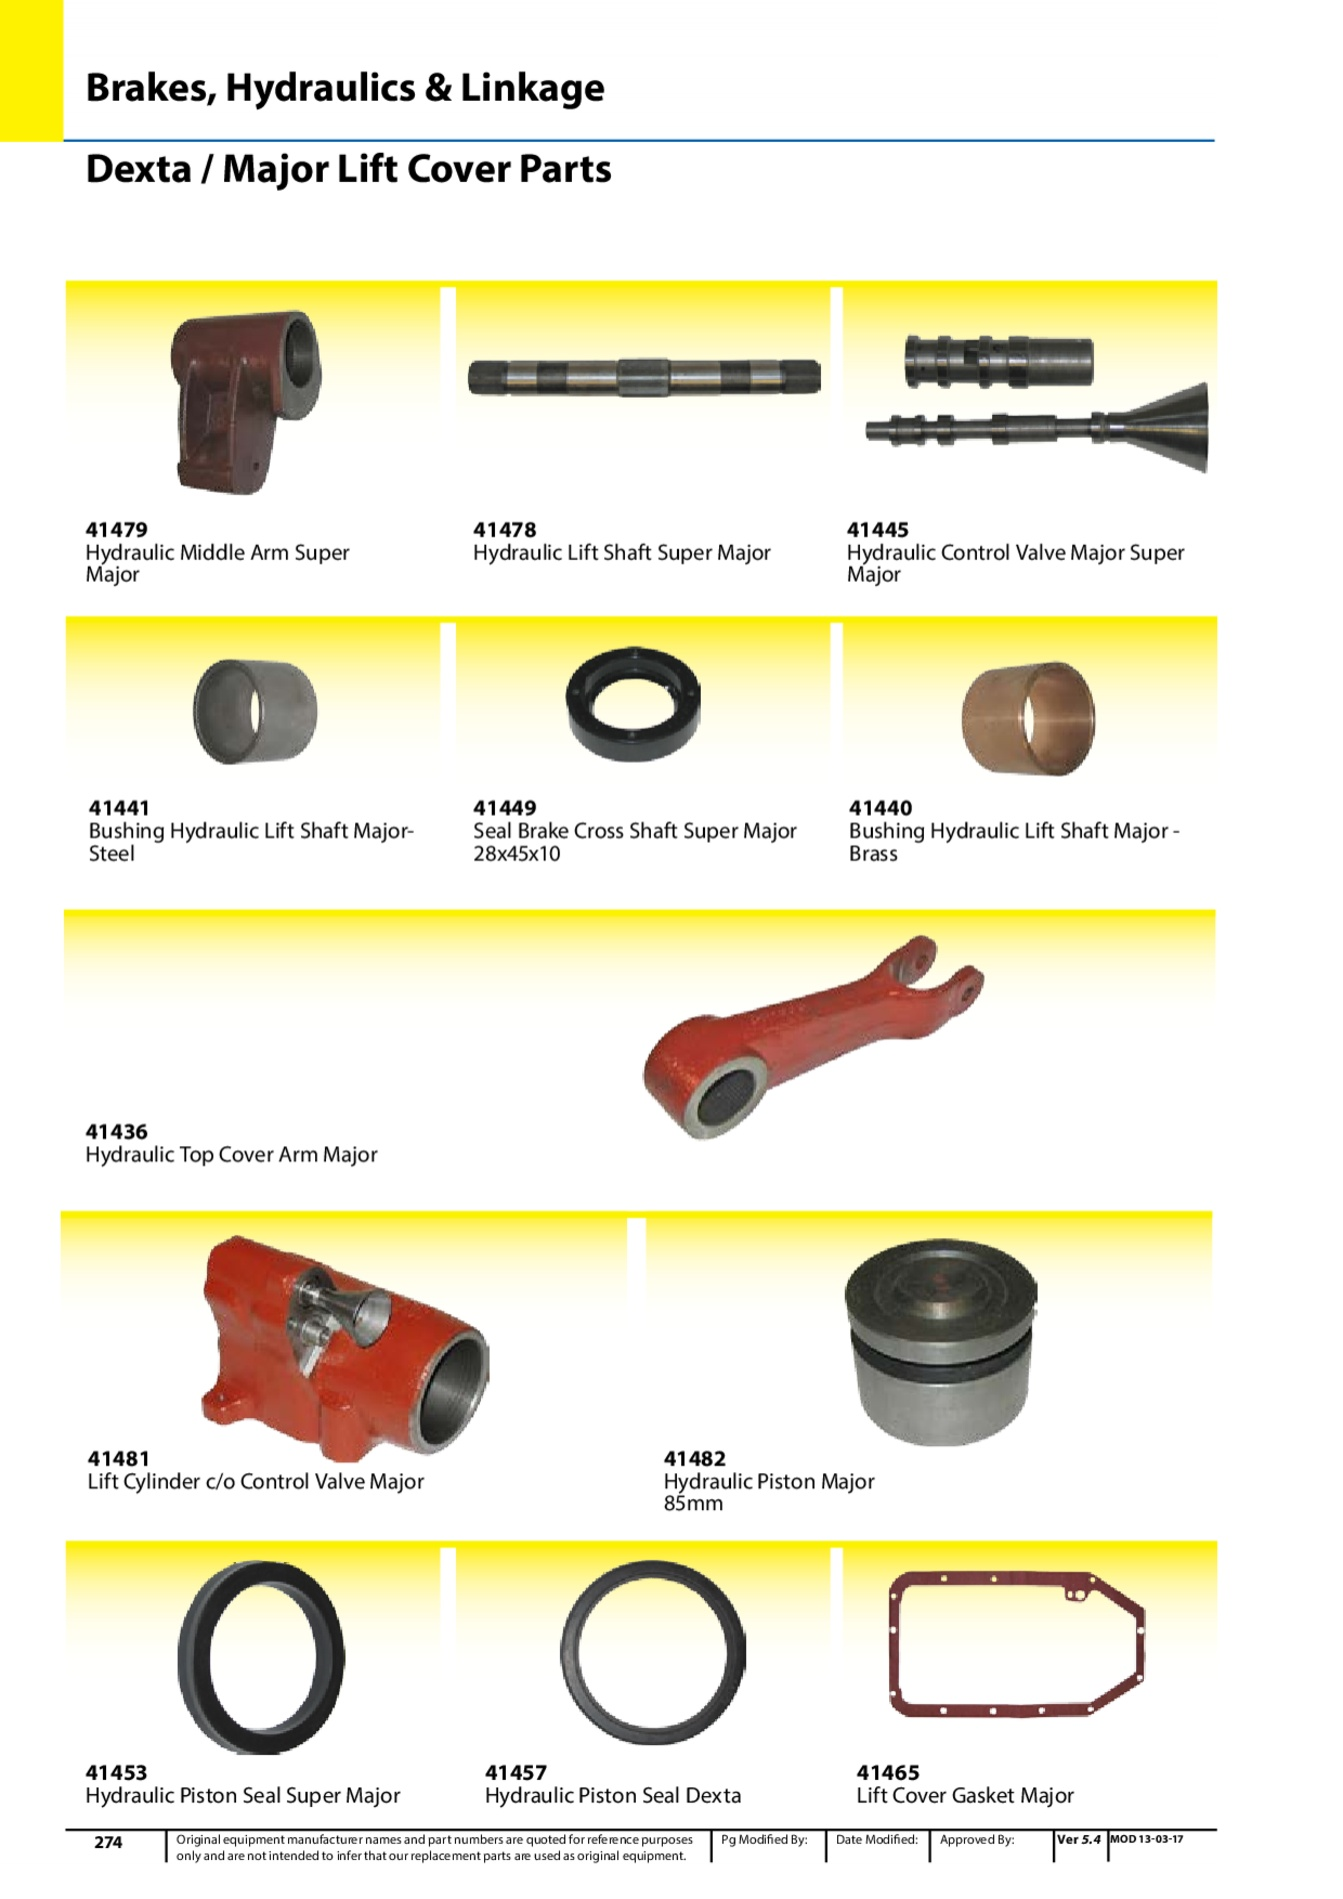 Hydraulic Lift Control : Hydraulic lift shaft super major quality tractor parts